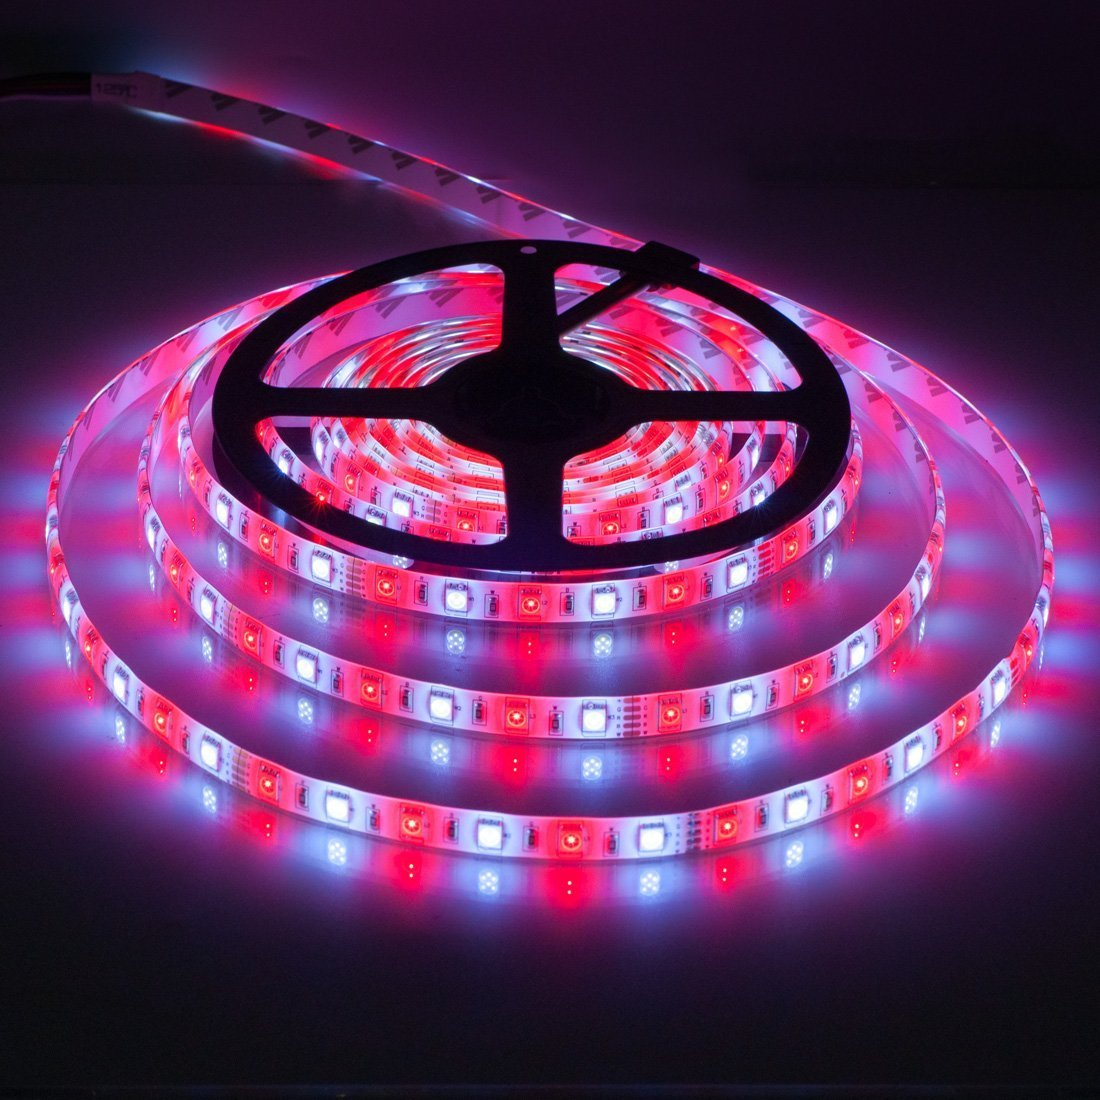 Lighting-Source 5050 RGBW RGB+Whtie Strip 5M 16.4ft 60leds/m IP65 Waterproof in slicone Coating Mixed Color led Strip